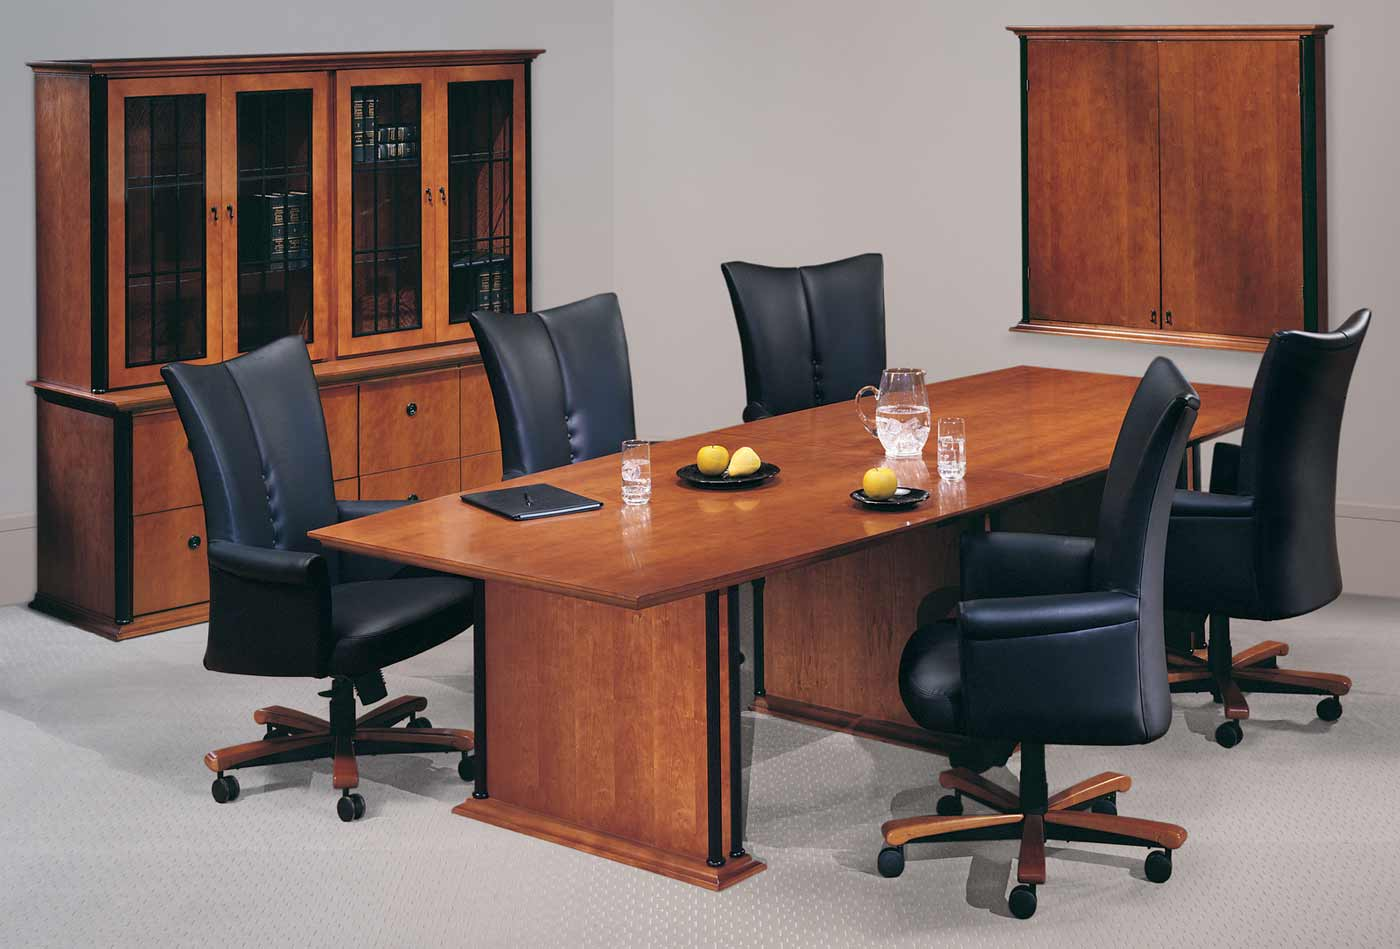 Remanufactured Office Furniture For Saving Budget